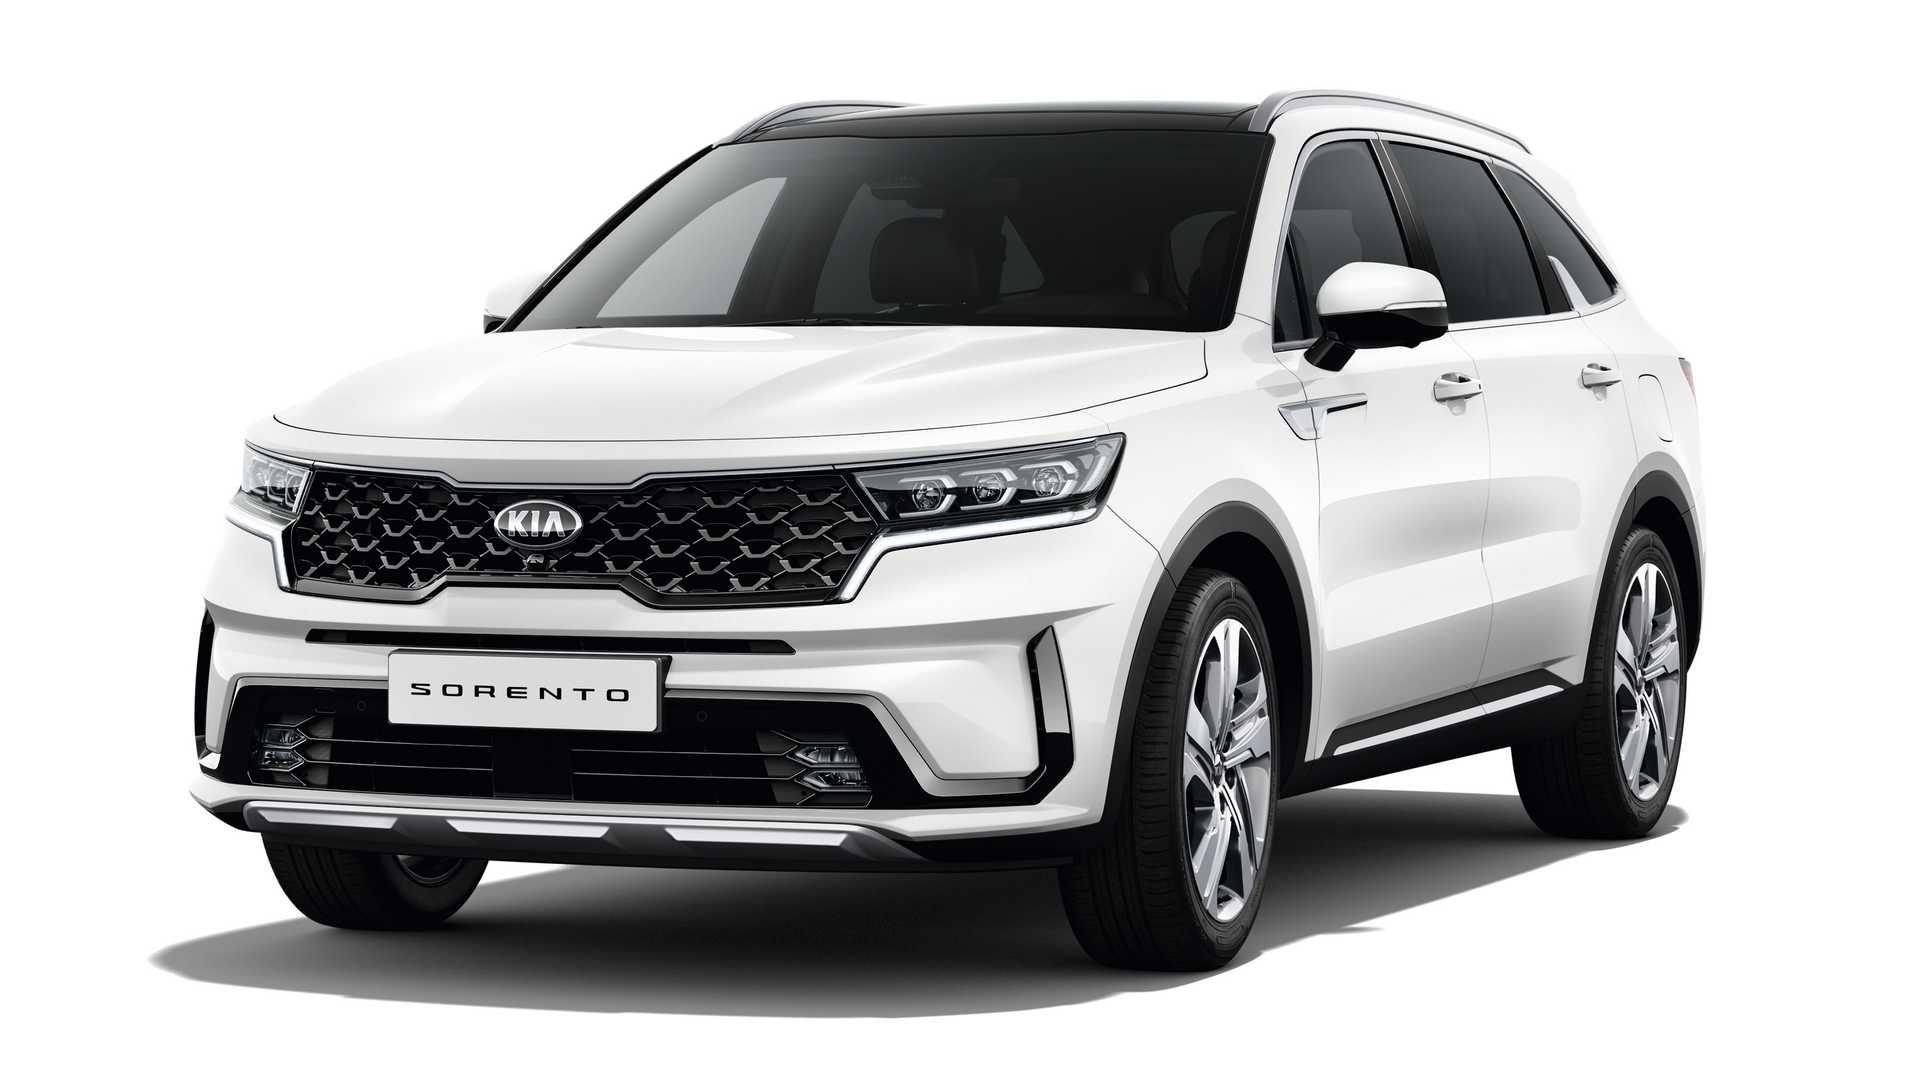 2021 Kia Sorento Revealed With More Style And Substance in